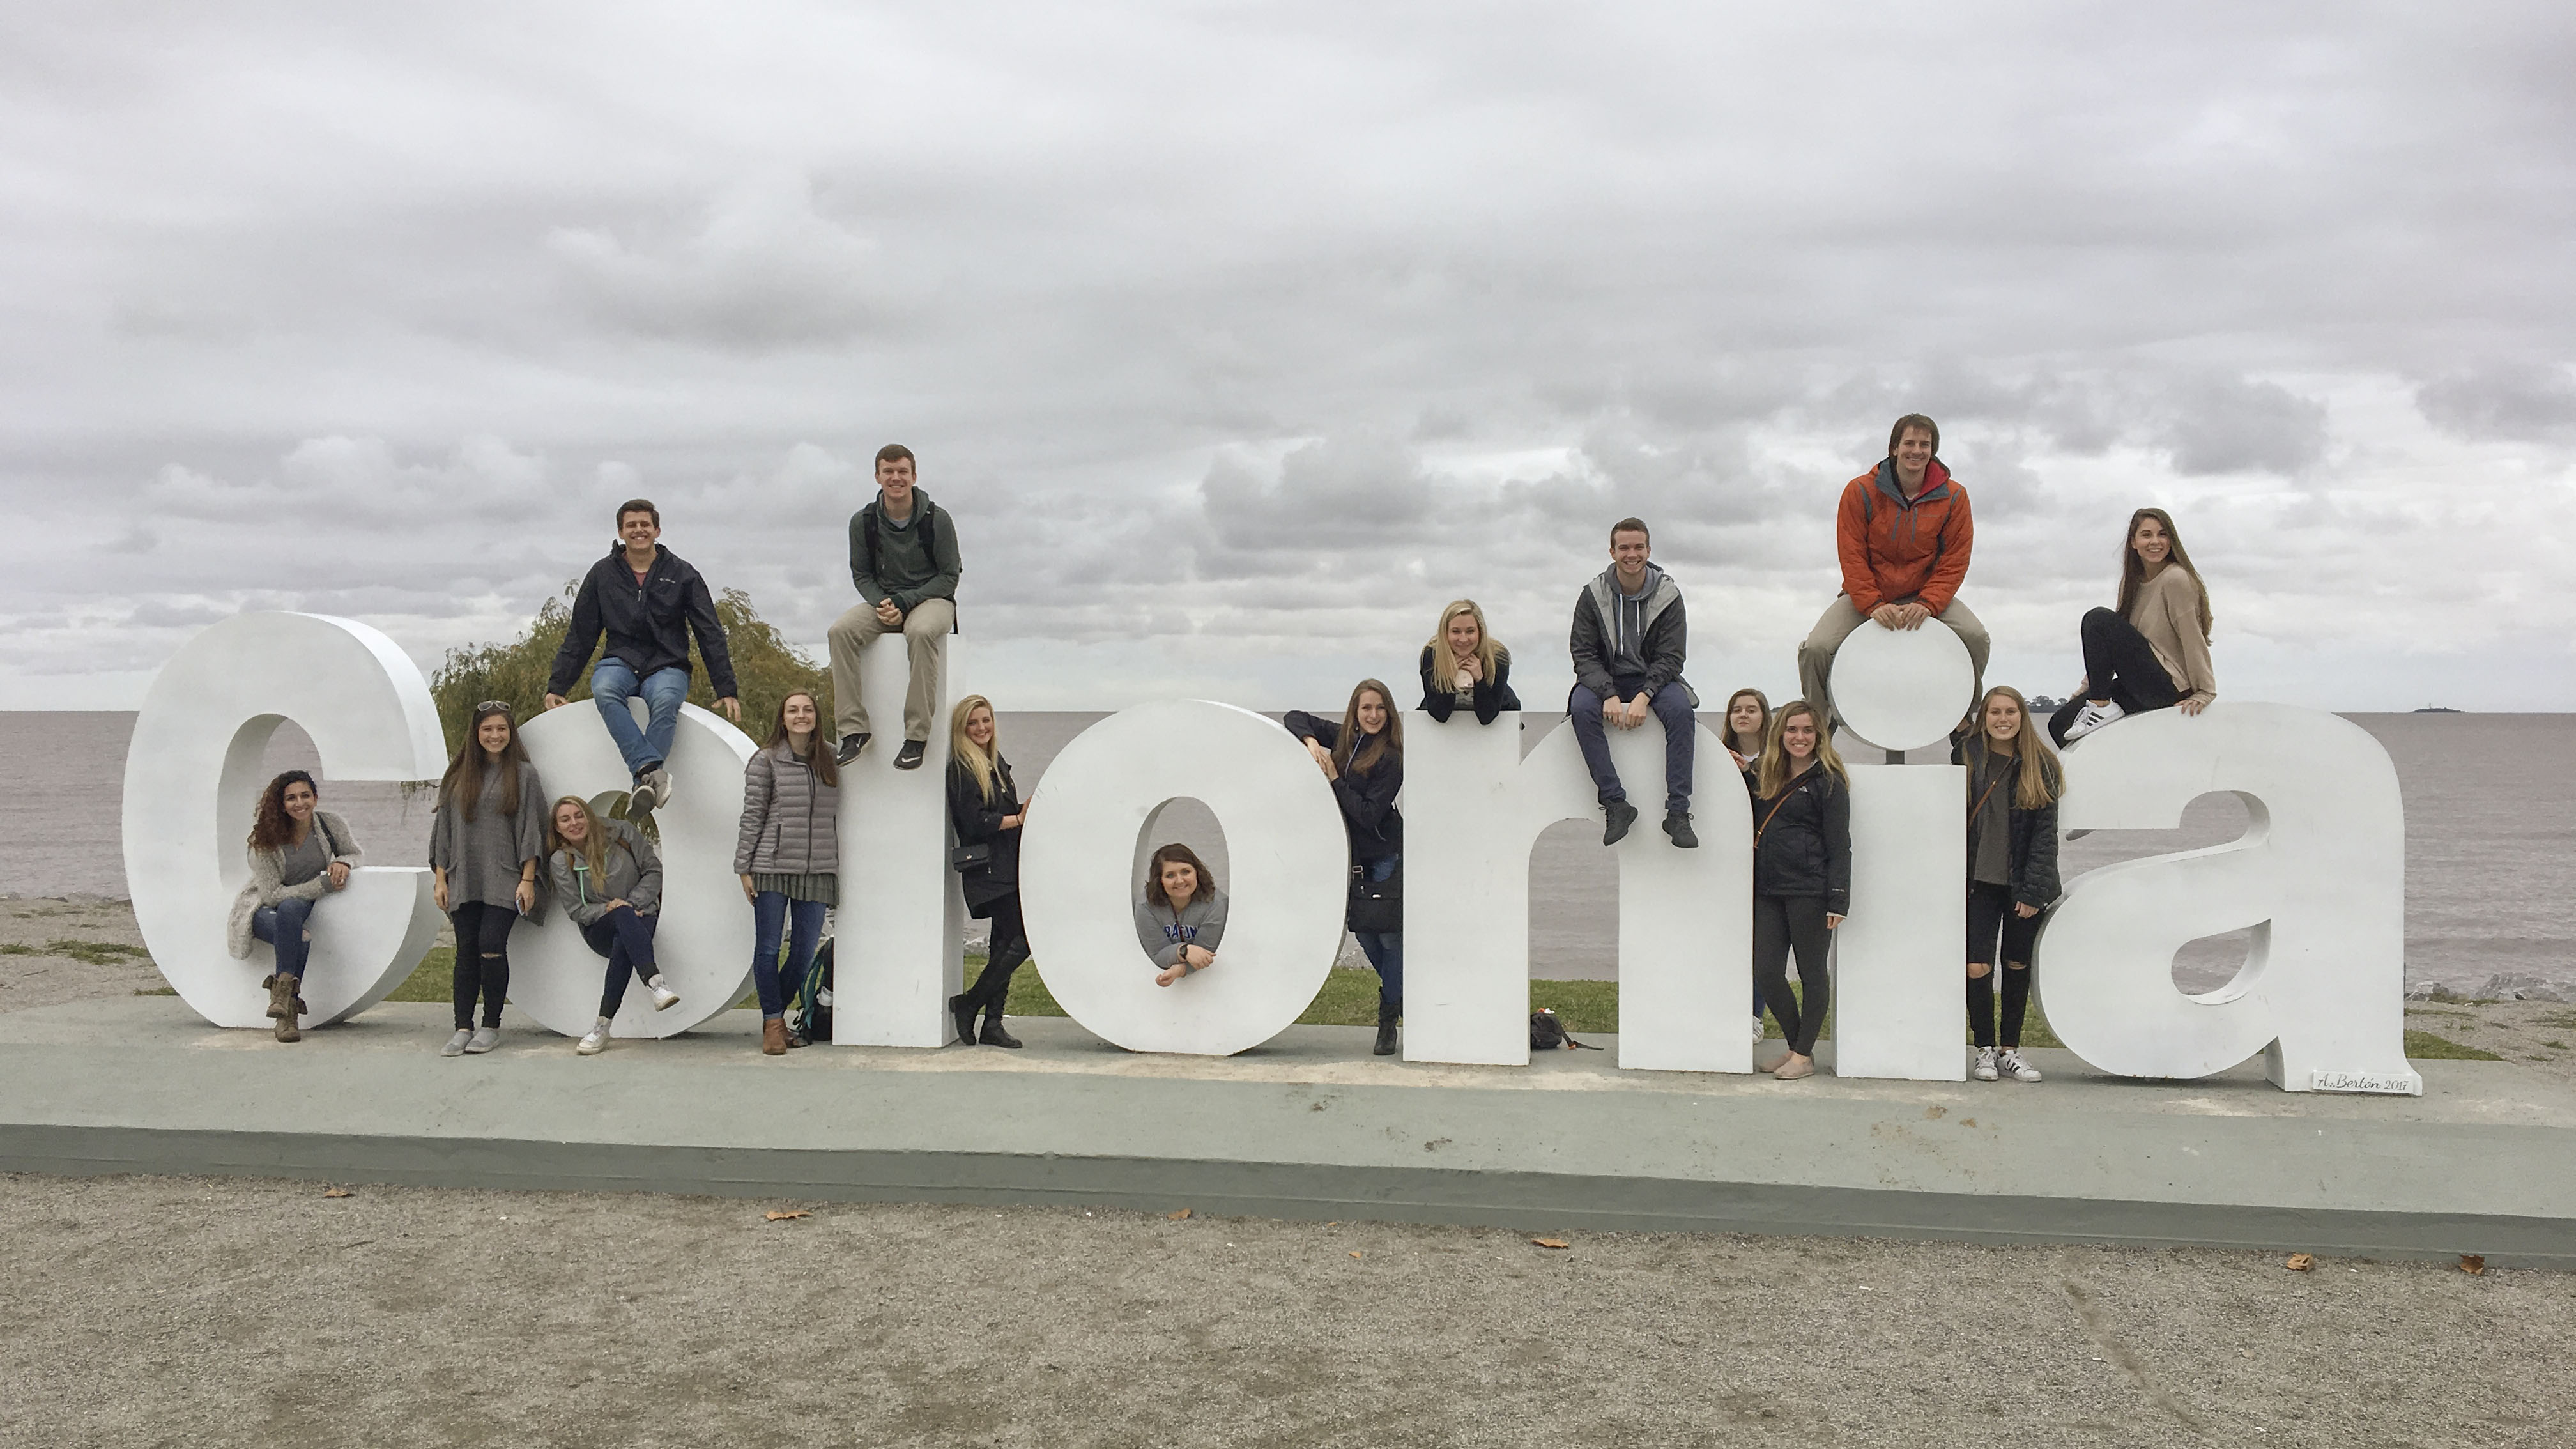 Devon Collins and her fellow students on their excursion to Colonia in Uruguay.